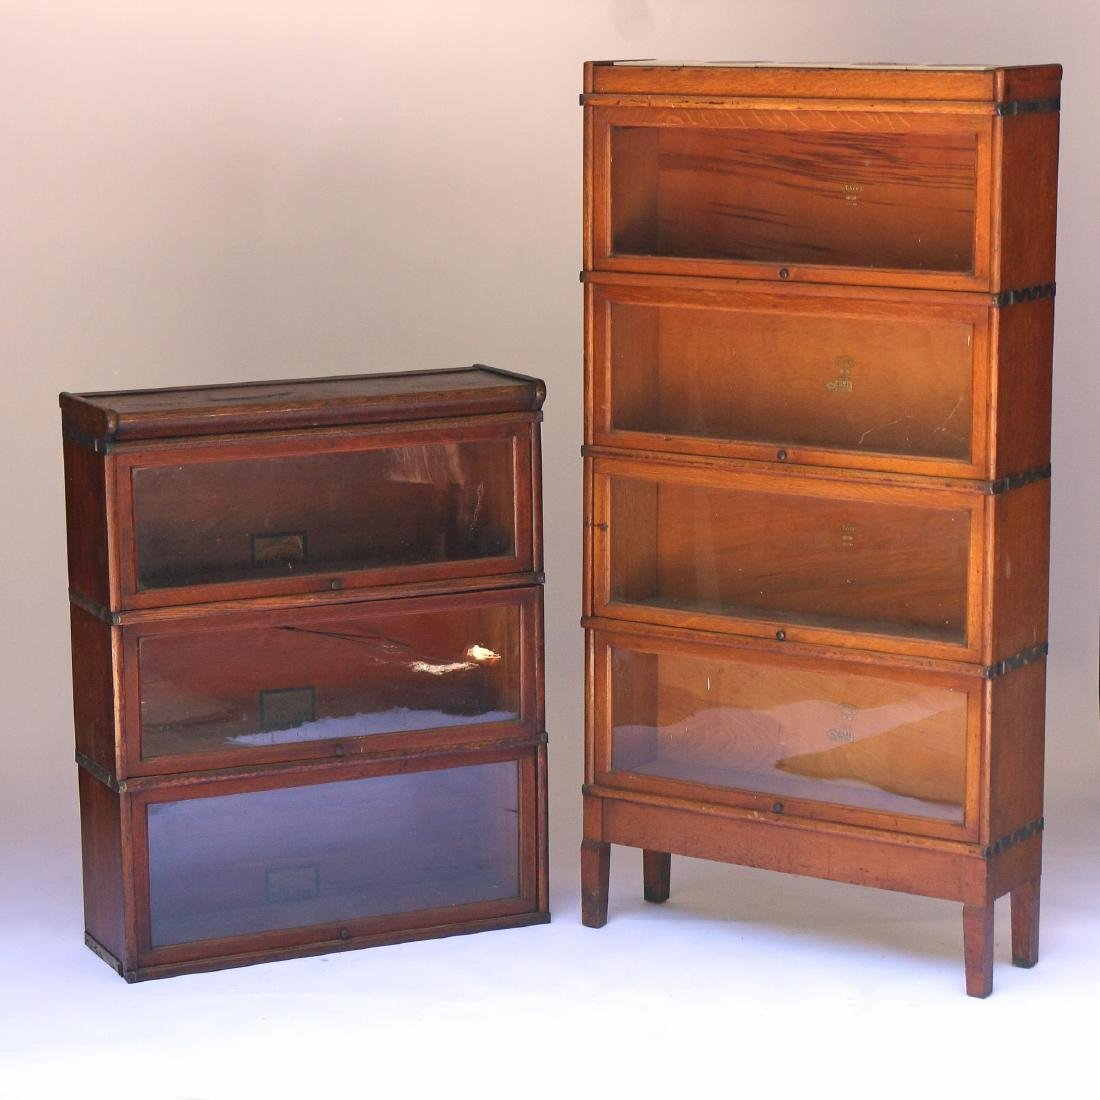 TWO BARRISTER BOOKCASES